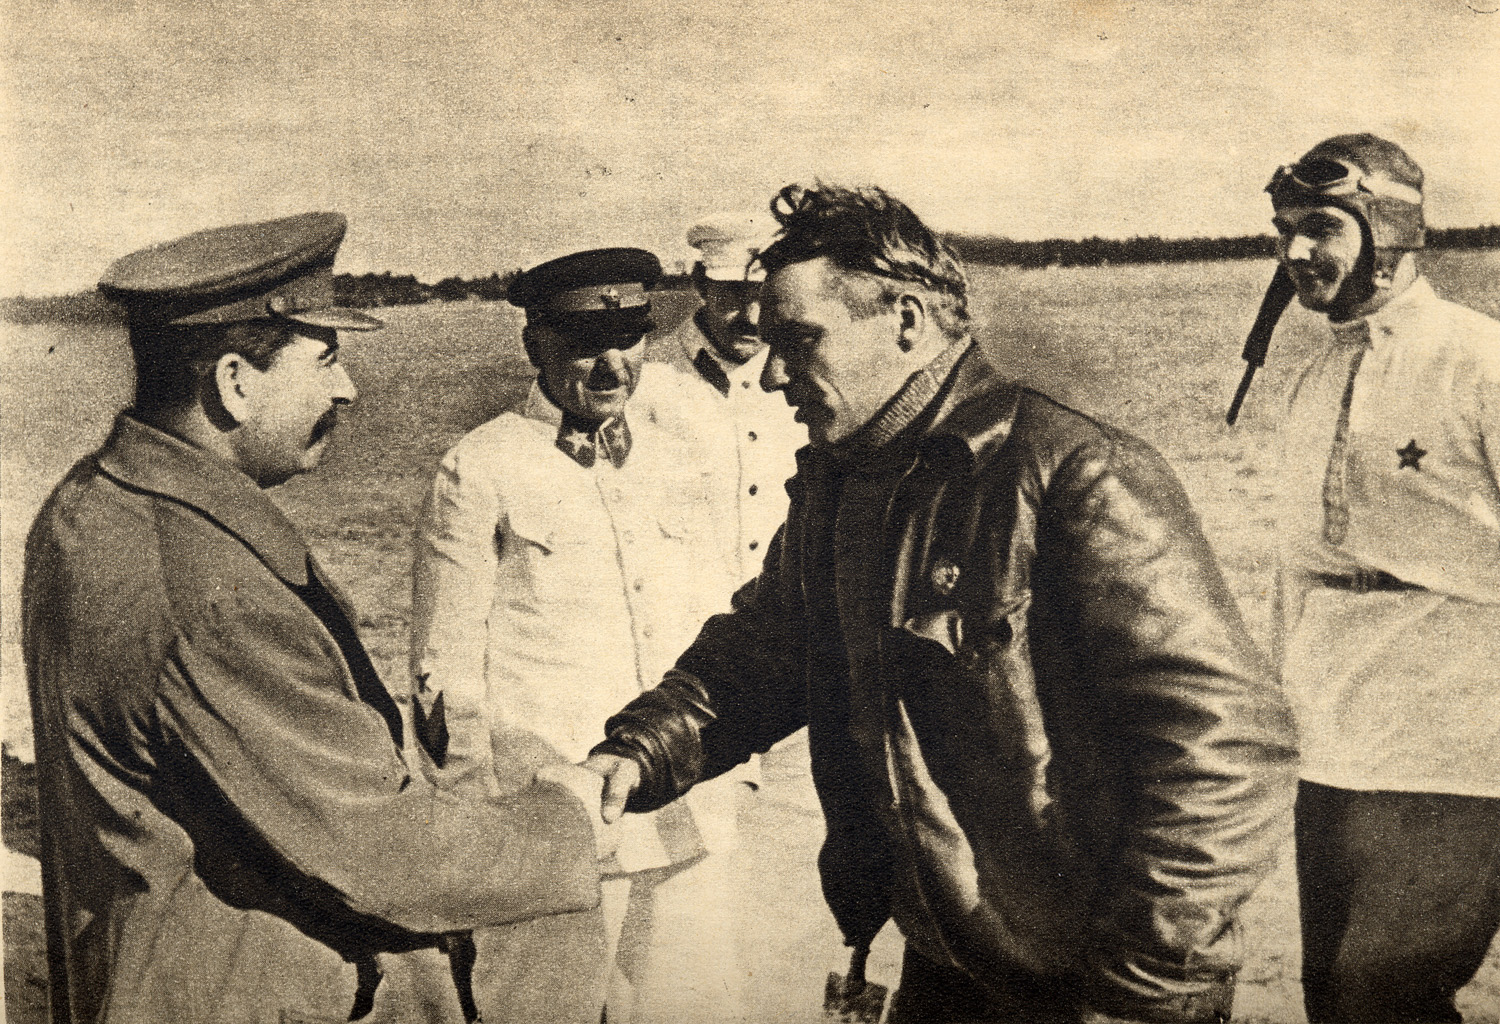 Chkalov,_Stalin_and_Belyakov._August_10,_1936